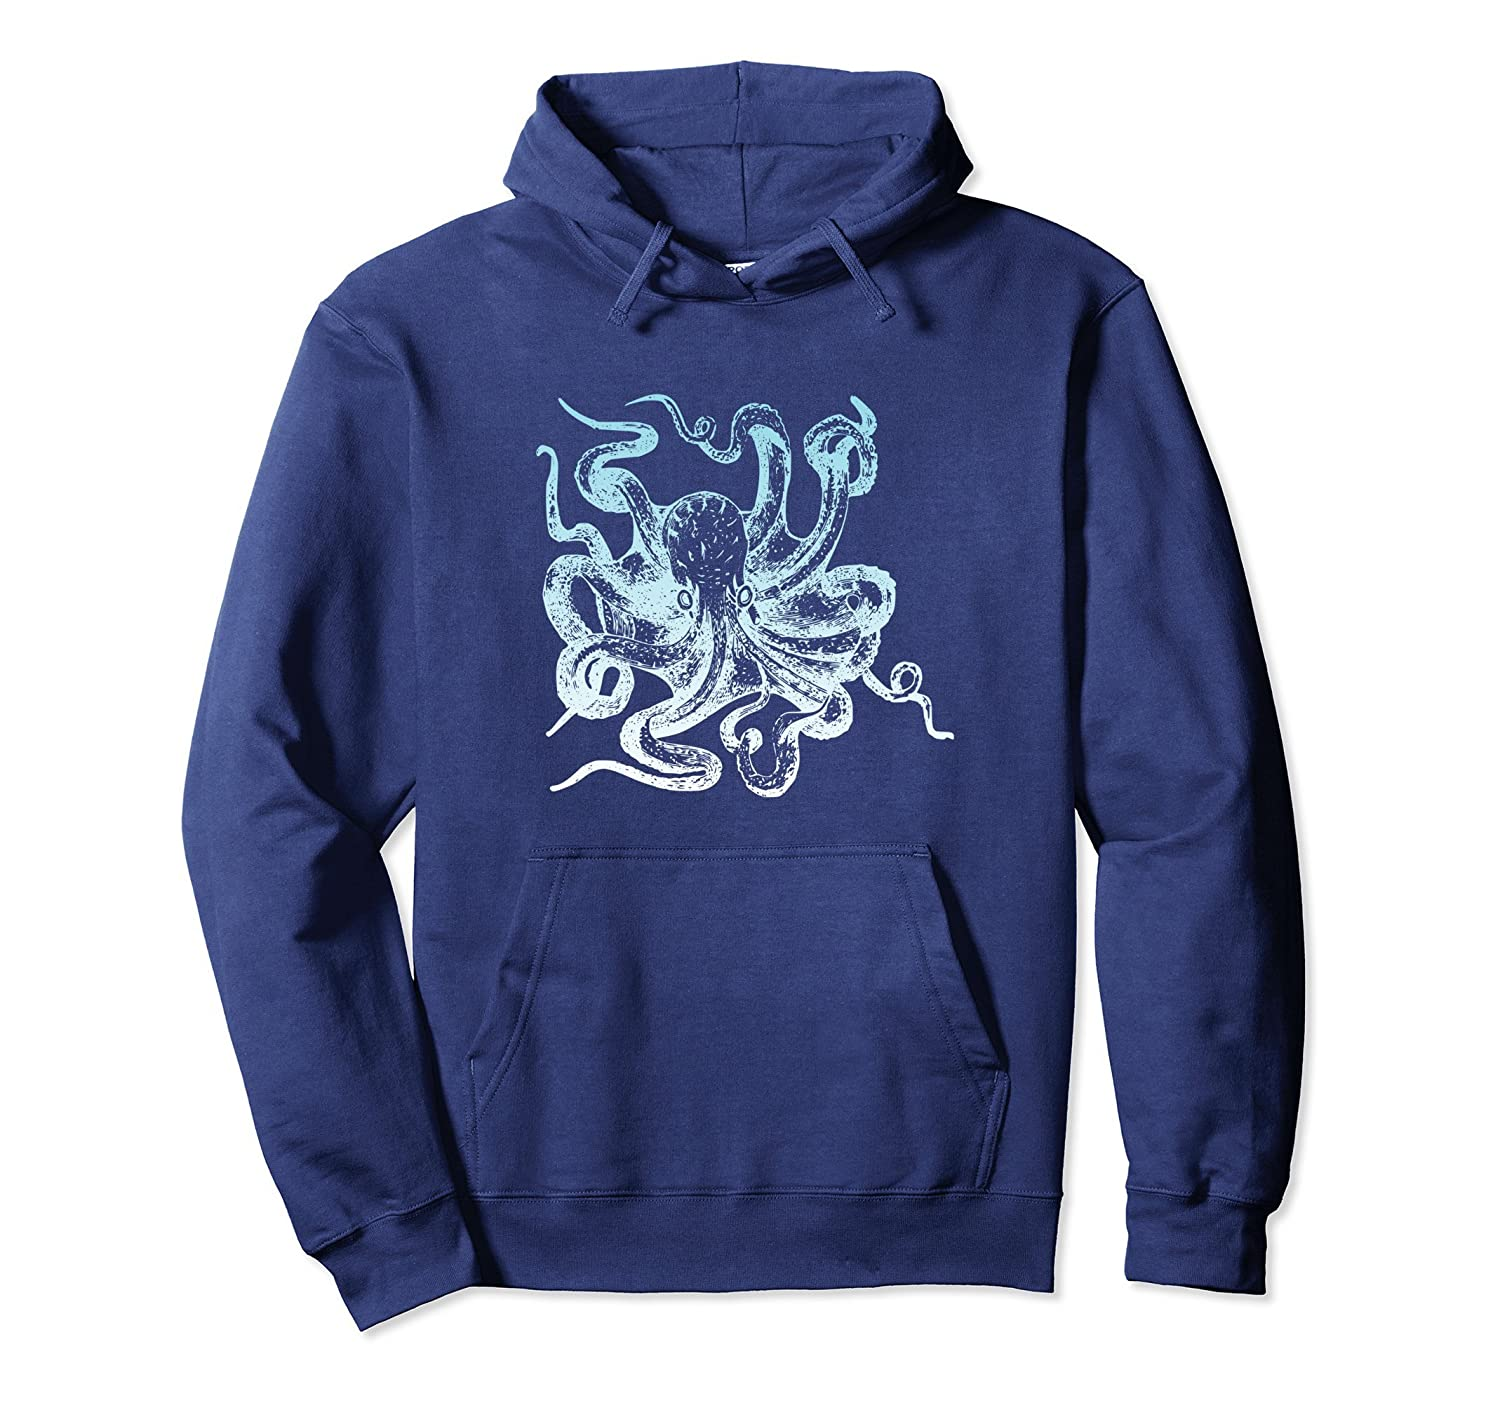 Love Of Sea Monsters Octopus Kraken Cthulhu Gift Hoodie Alottee